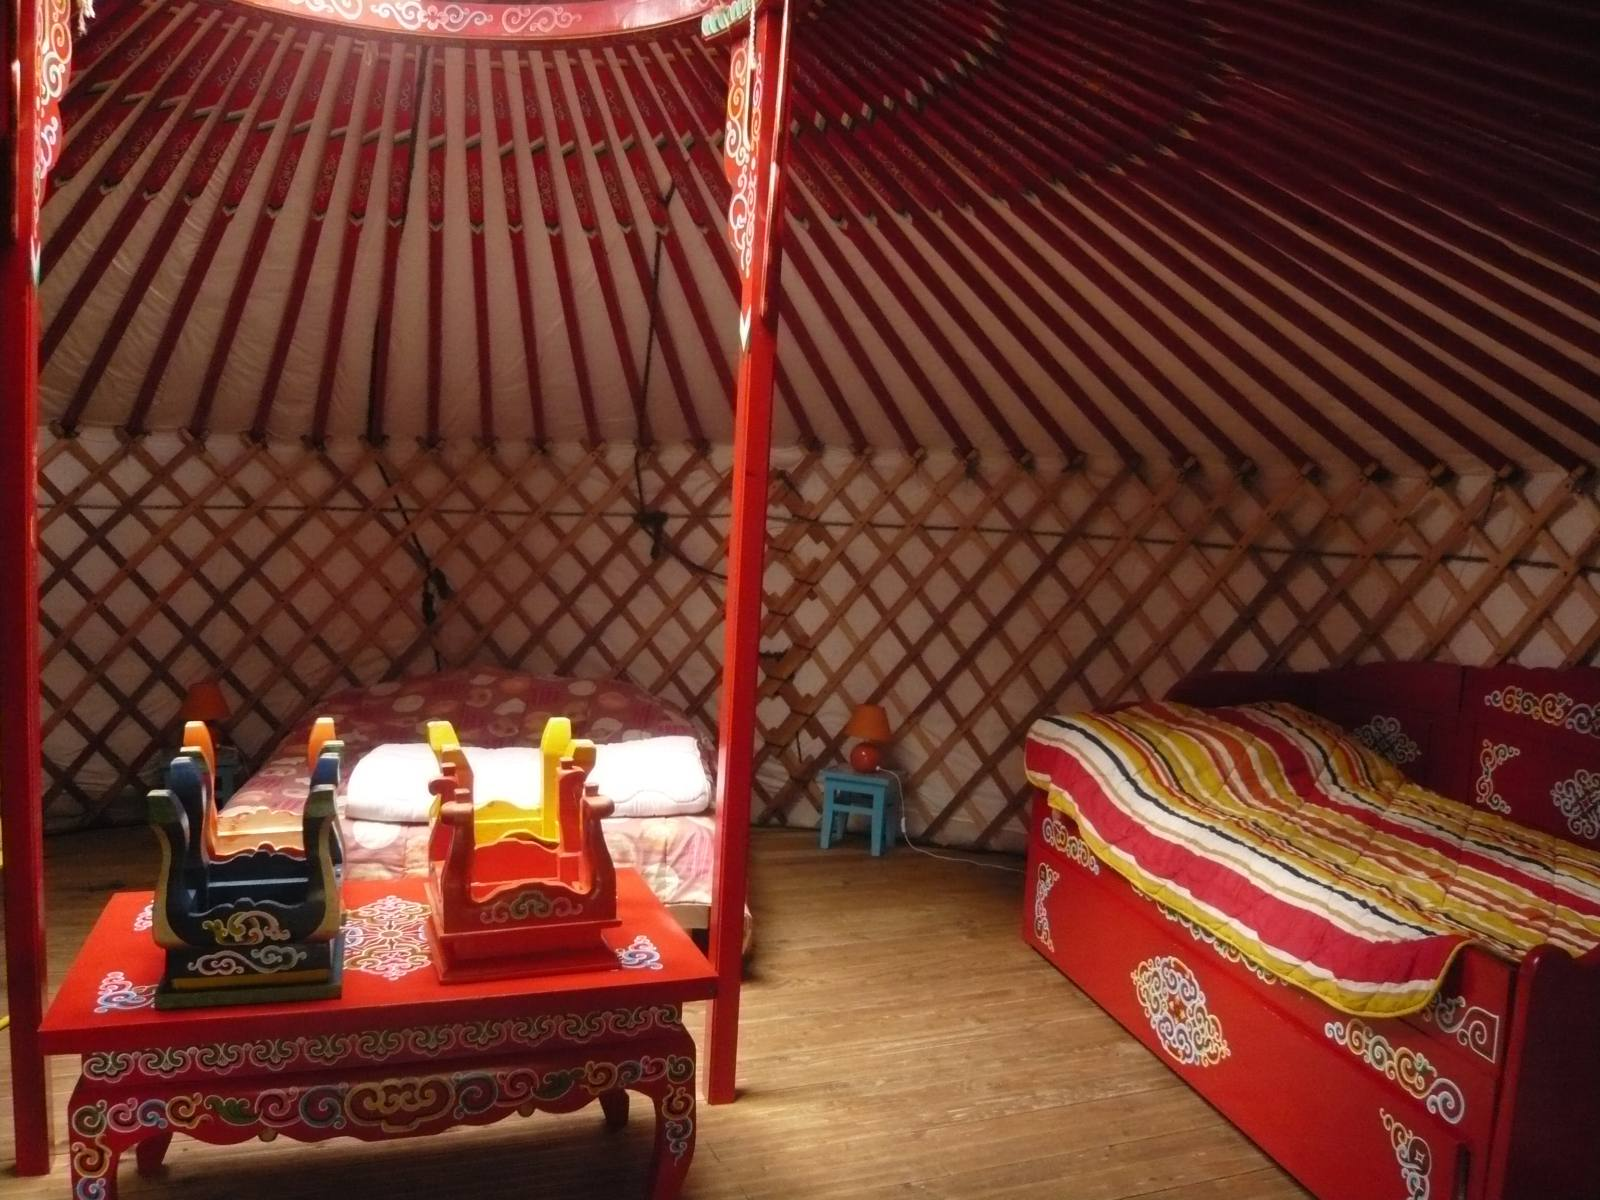 Inside a yurt at Village Insolite